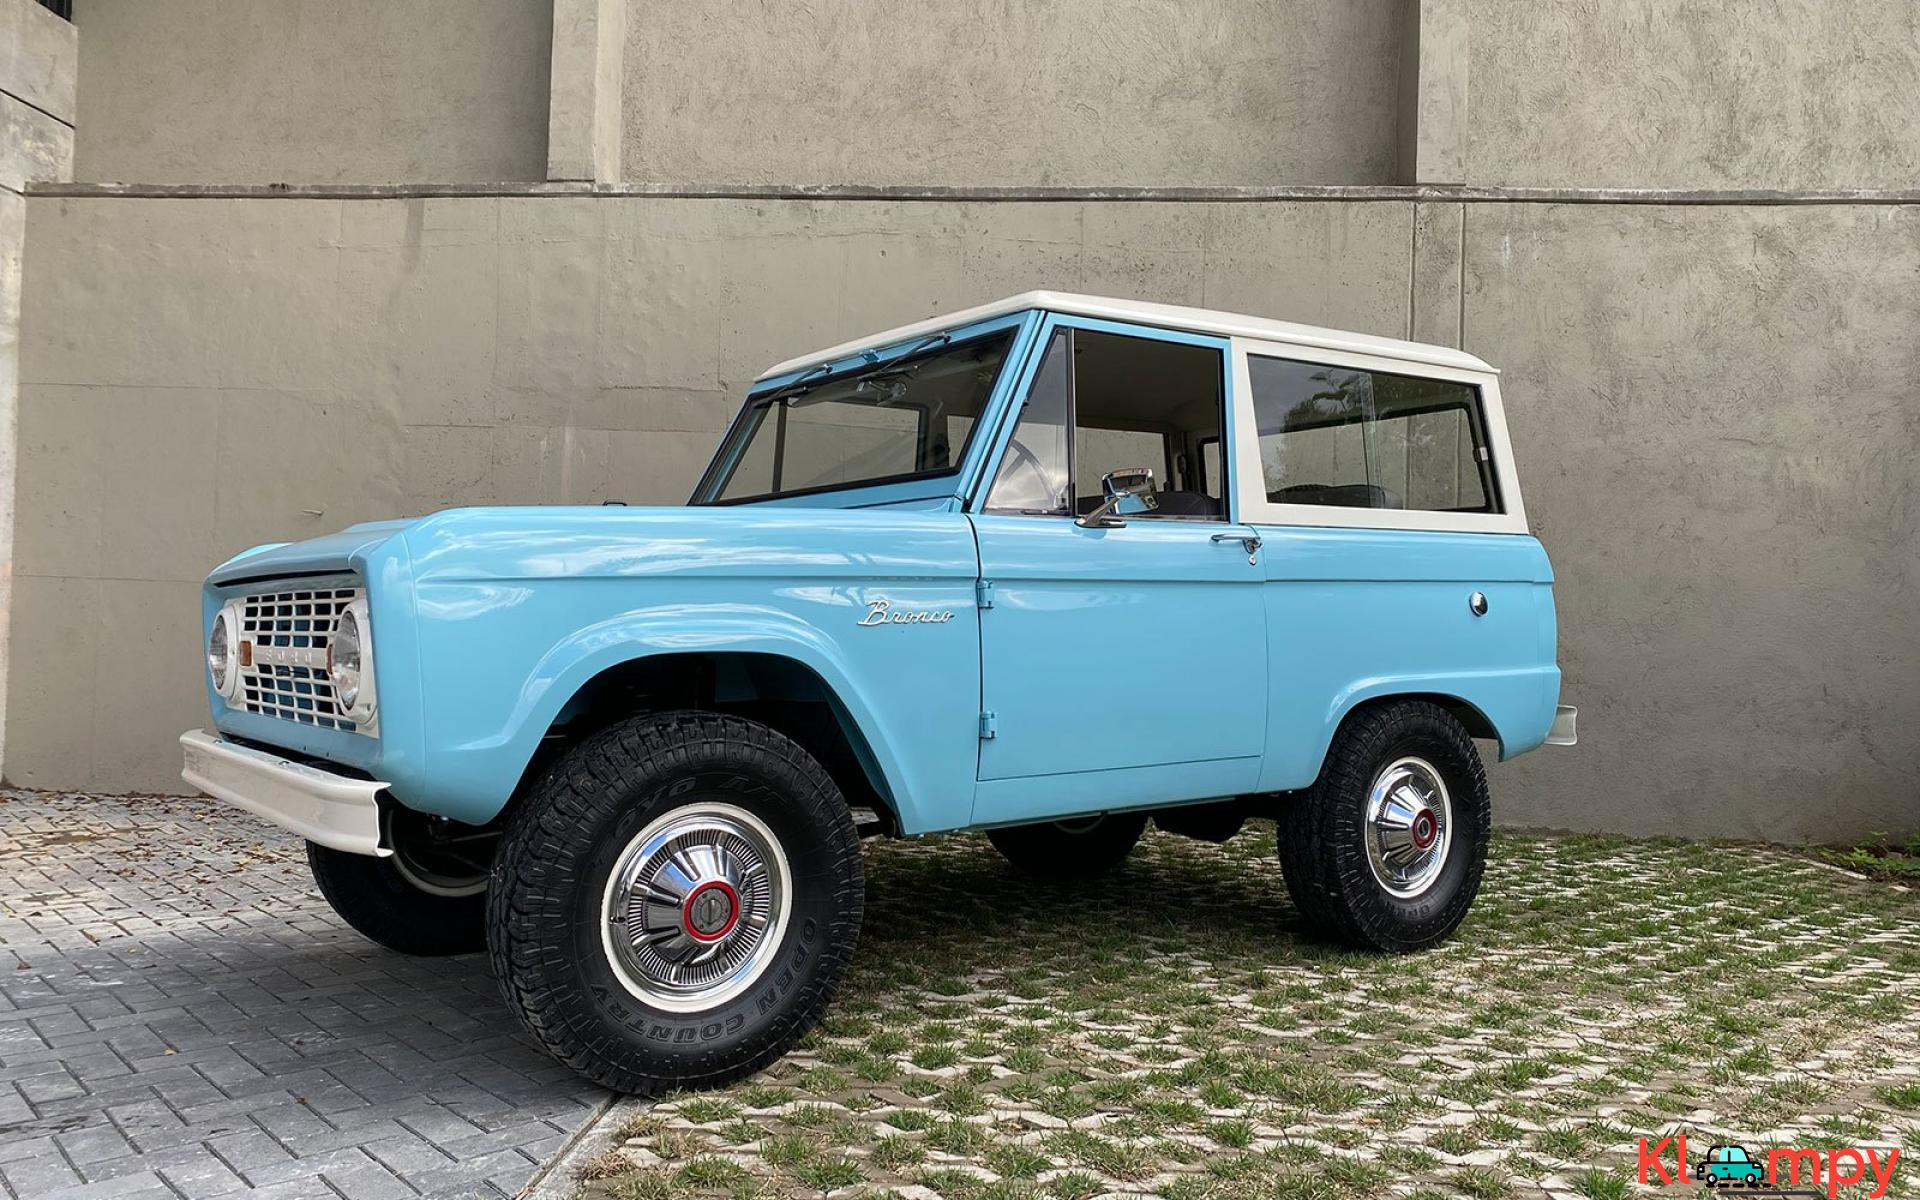 1967 Ford Bronco 170 Inline-Six - 1/21